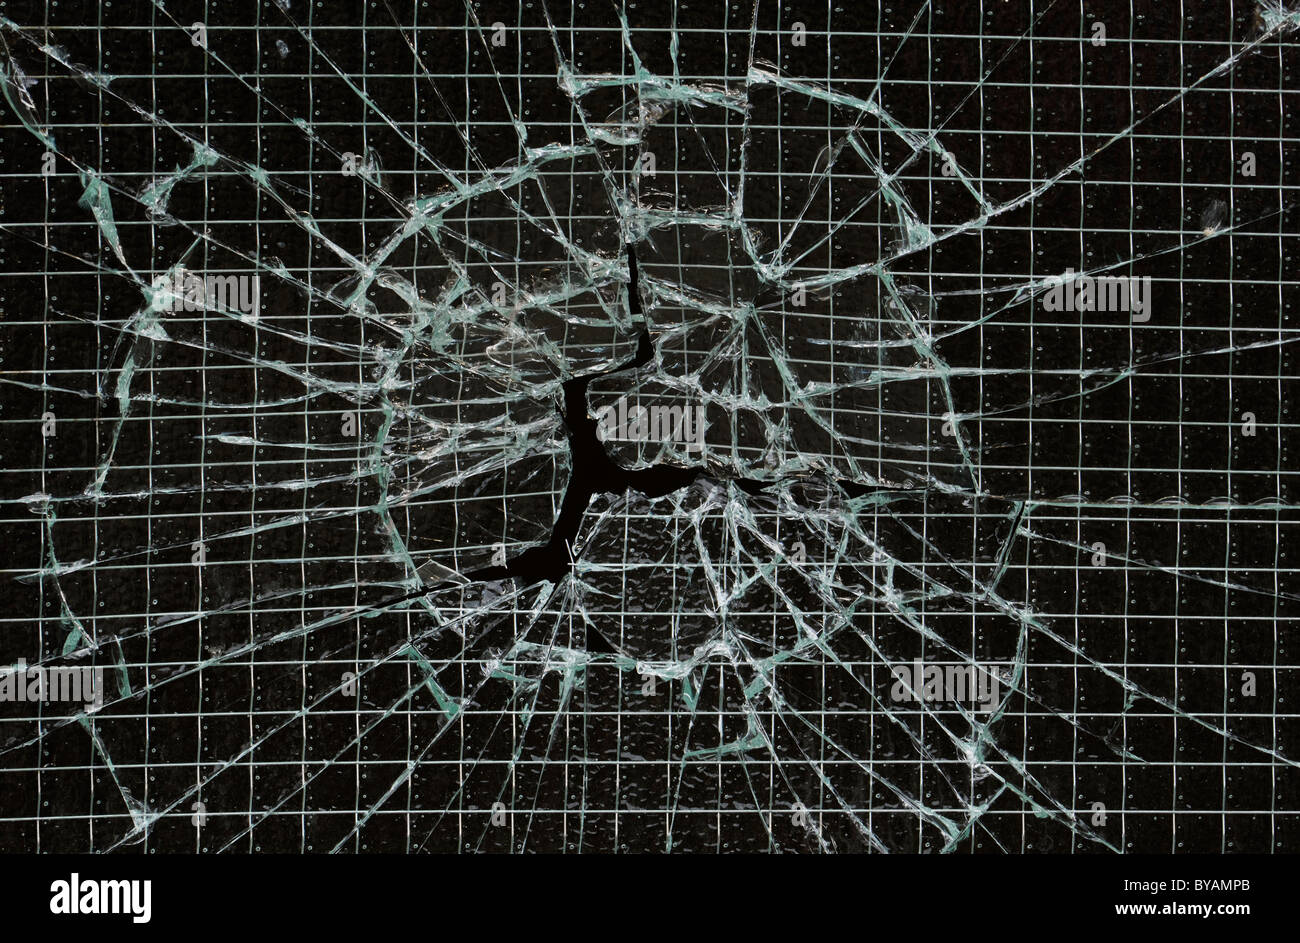 Cracked reinforced glass window - Stock Image